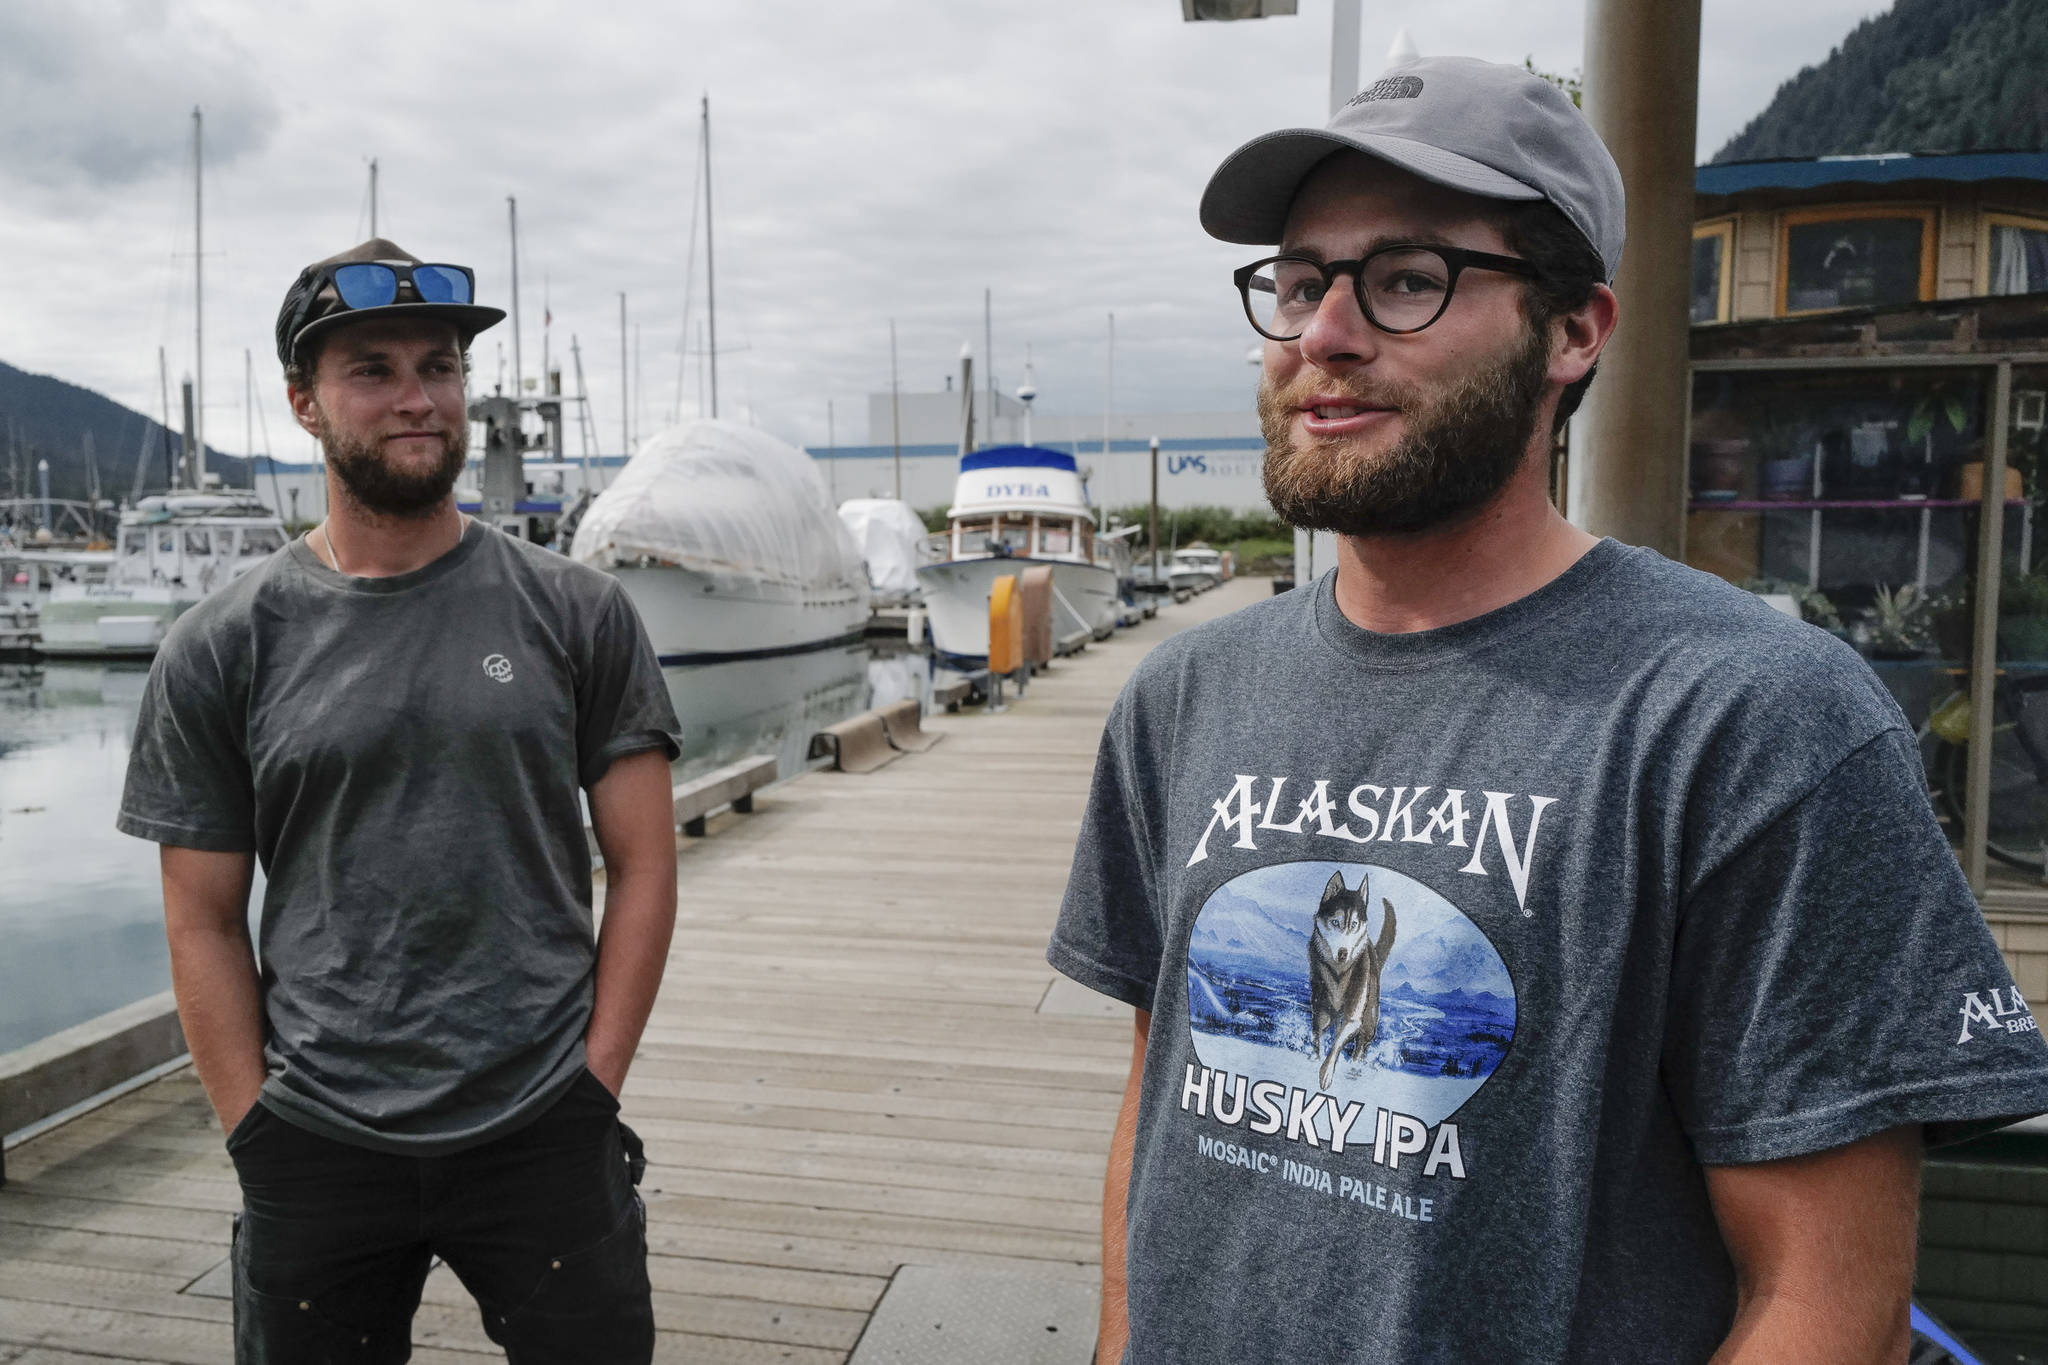 Liam Godfrey-Jolicoeur, left, and Jake Dombek, talk at Harris Harbor on Thursday, Aug. 2, 2019, about their nearly two-month long trip up the Inside Passage by canoe. Both are orginally from Vermont used the trip to raise money and bring awareness to environmental causes. (Michael Penn | Juneau Empire)